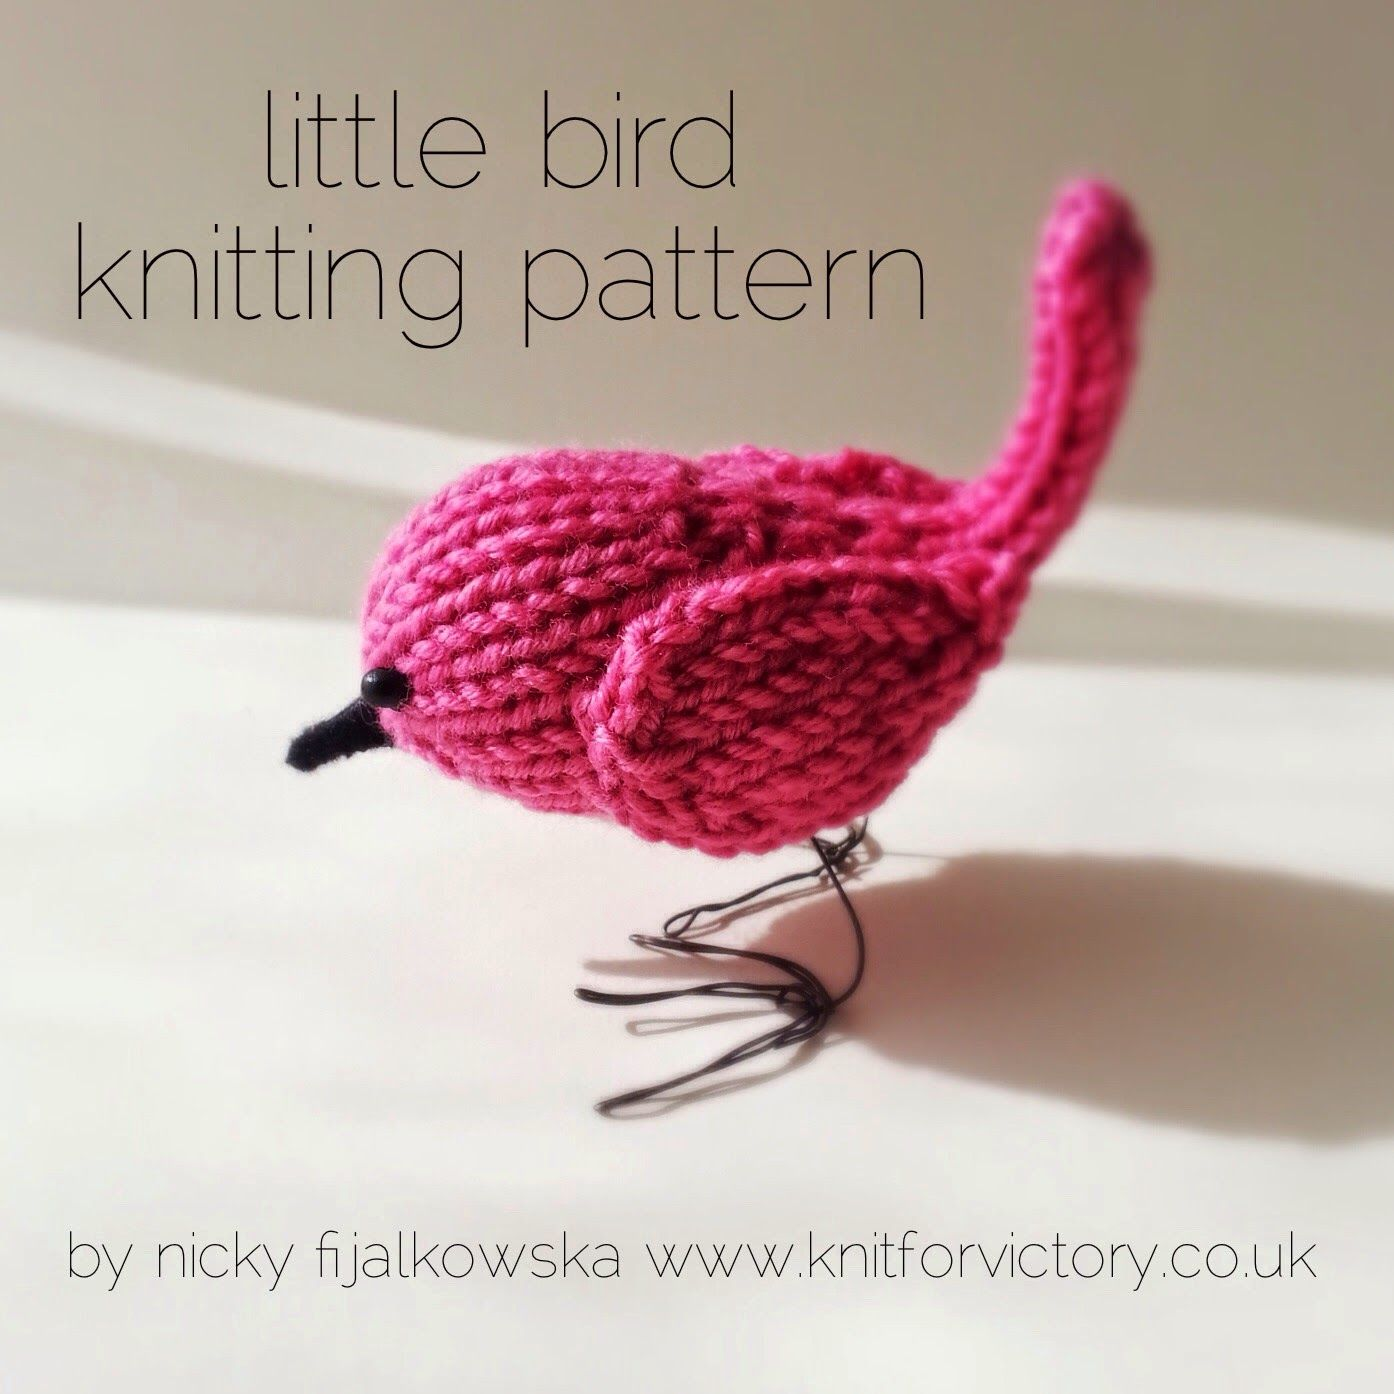 Knit for victory cute little bird knitting pattern in my etsy knit for victory cute little bird knitting pattern in my etsy shop now bankloansurffo Choice Image